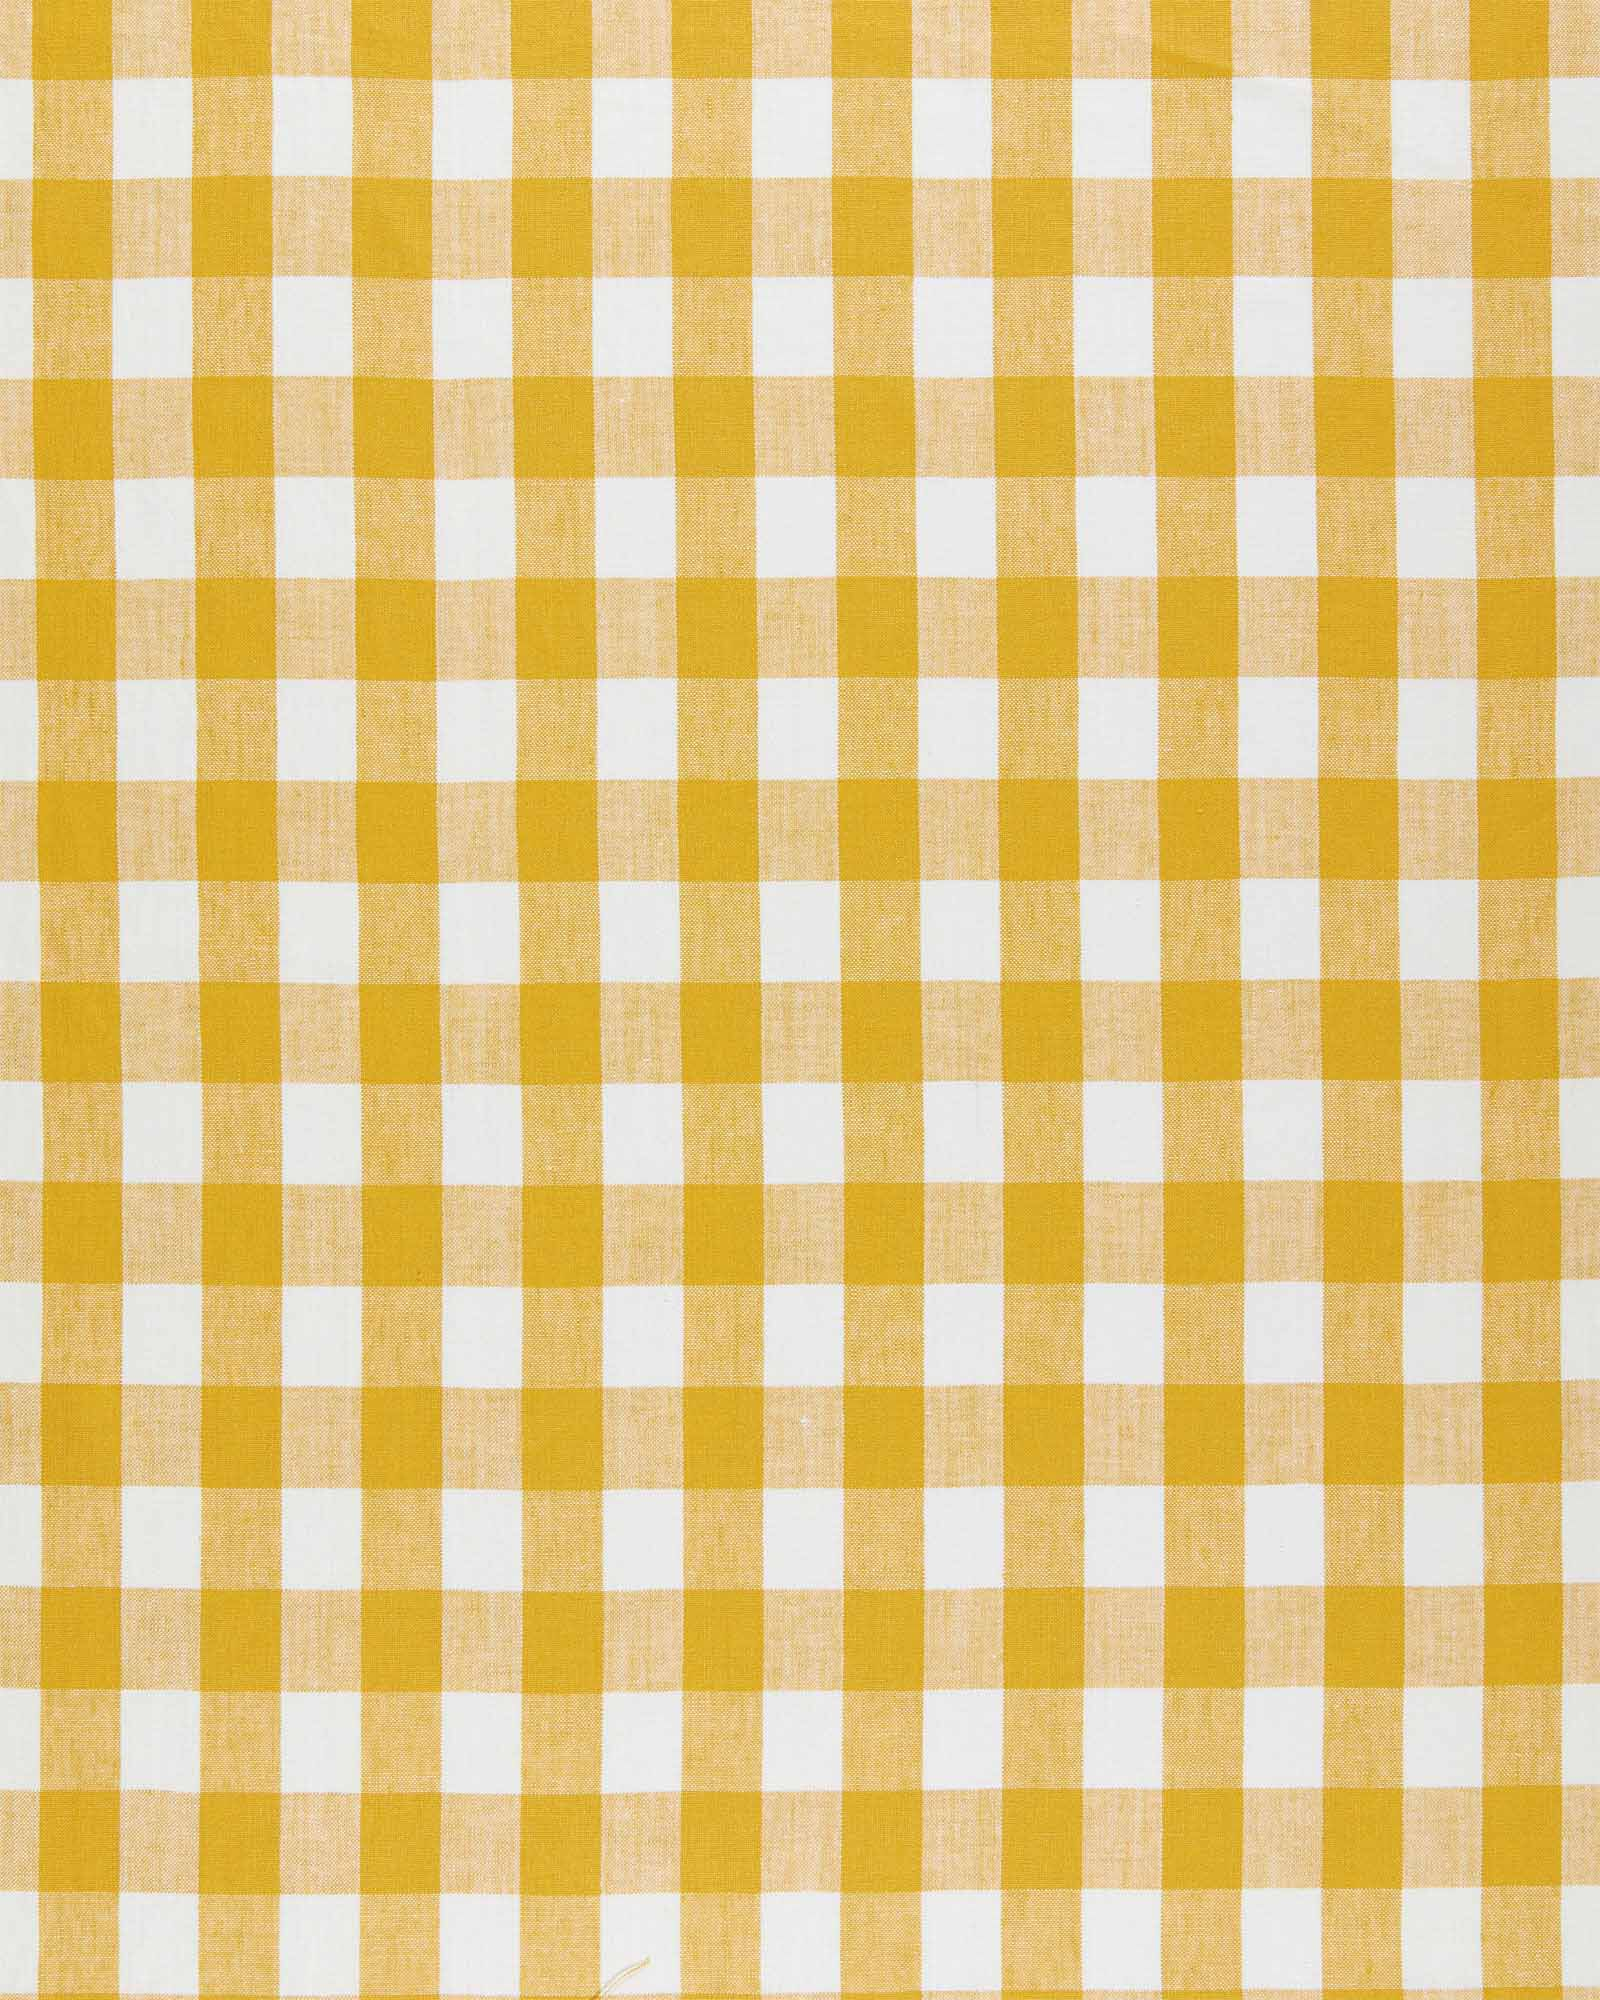 Fabric by the Yard - Classic Gingham Linen, Ochre